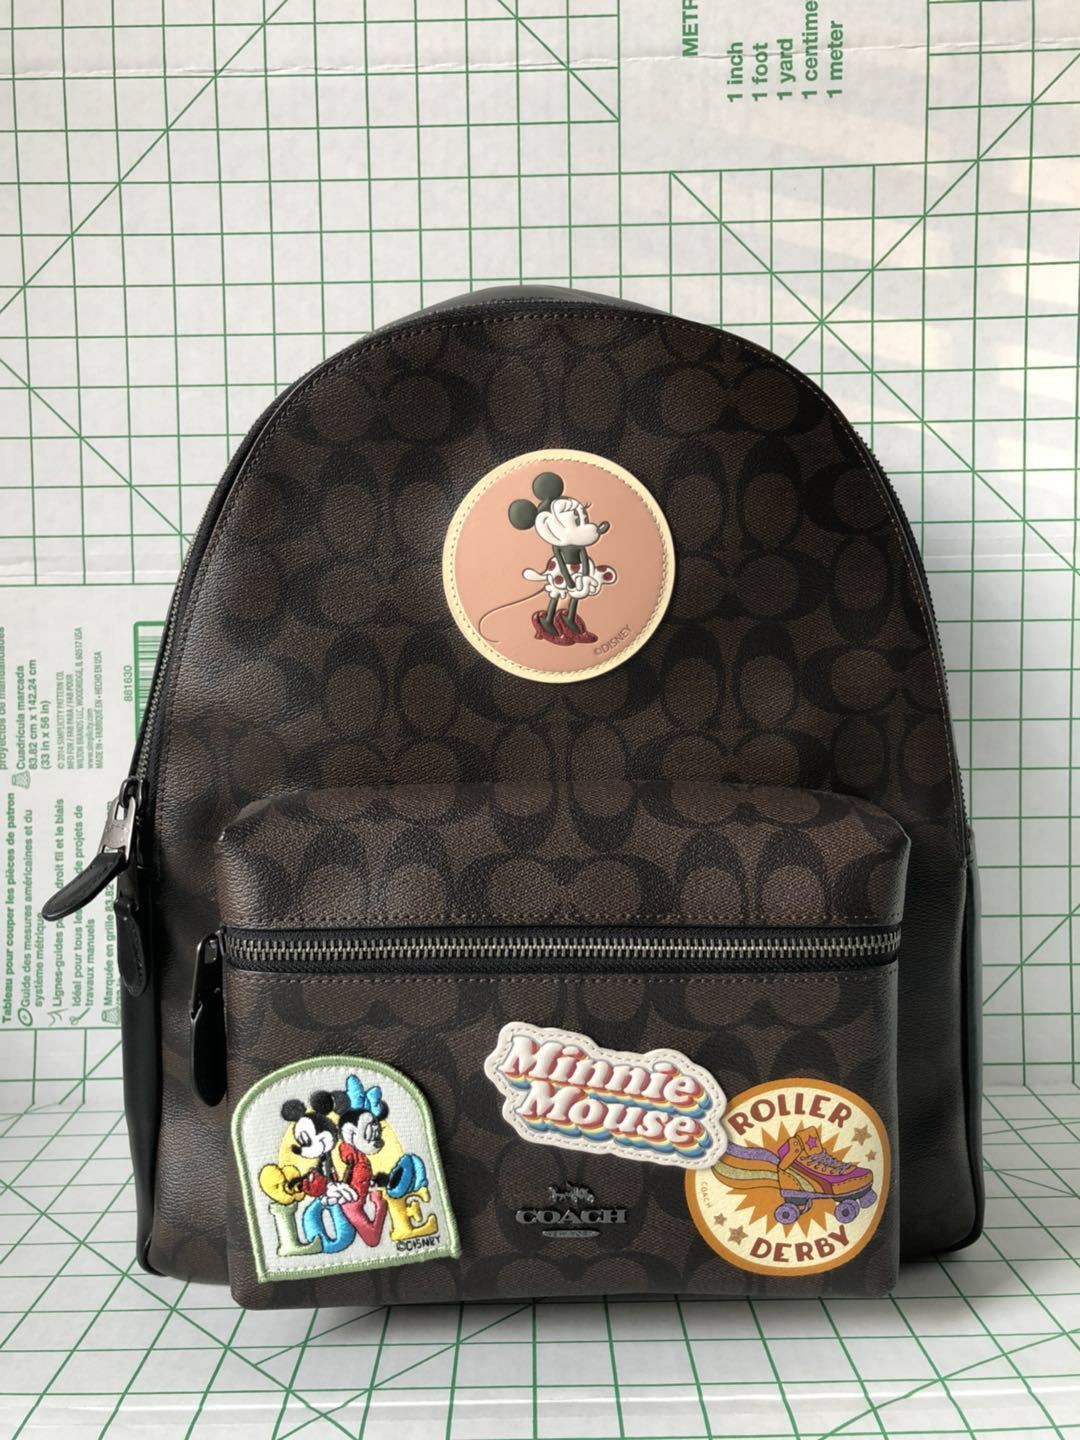 38224e5b599 57. 57. Previous. NWT WOMEN S COACH X DISNEY (F29355) MINNIE MOUSE  SIGNATURE LEATHER BACKPACK BAG